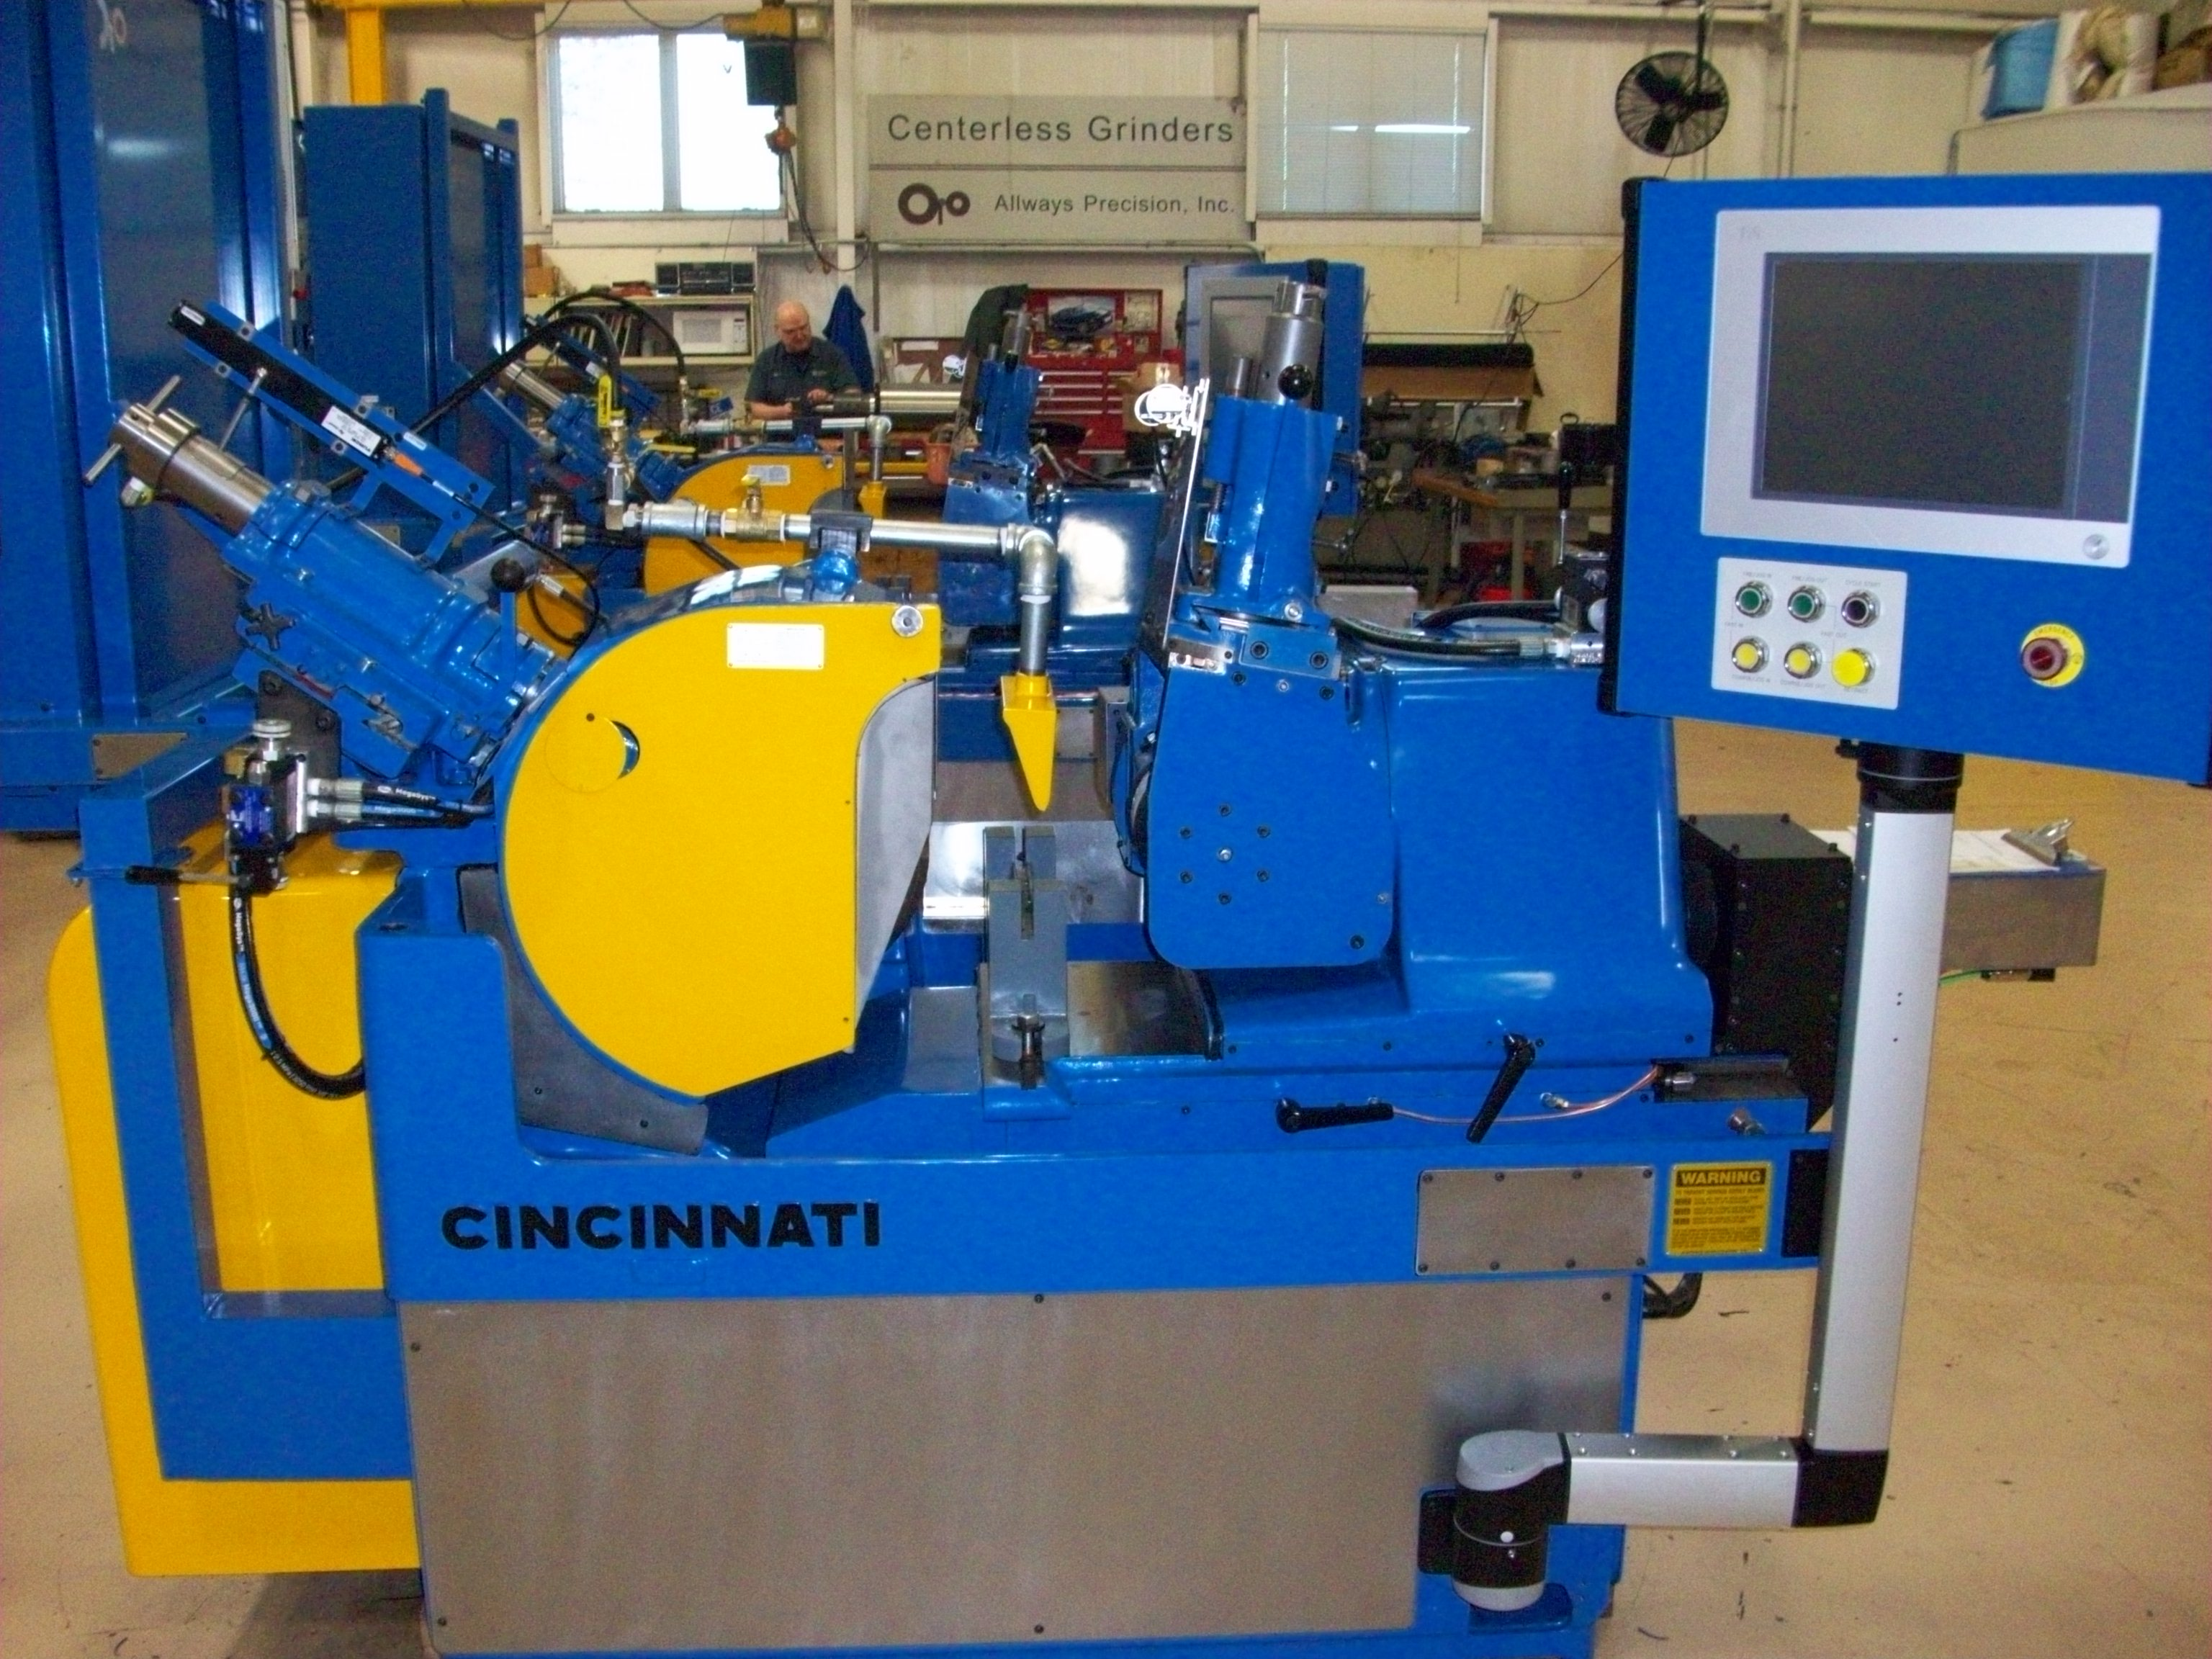 Cincinnati Centerless Grinder 2OM, Various Conditions (Remanufactured, Rebuilt, Inspected) More than 20 in stock.